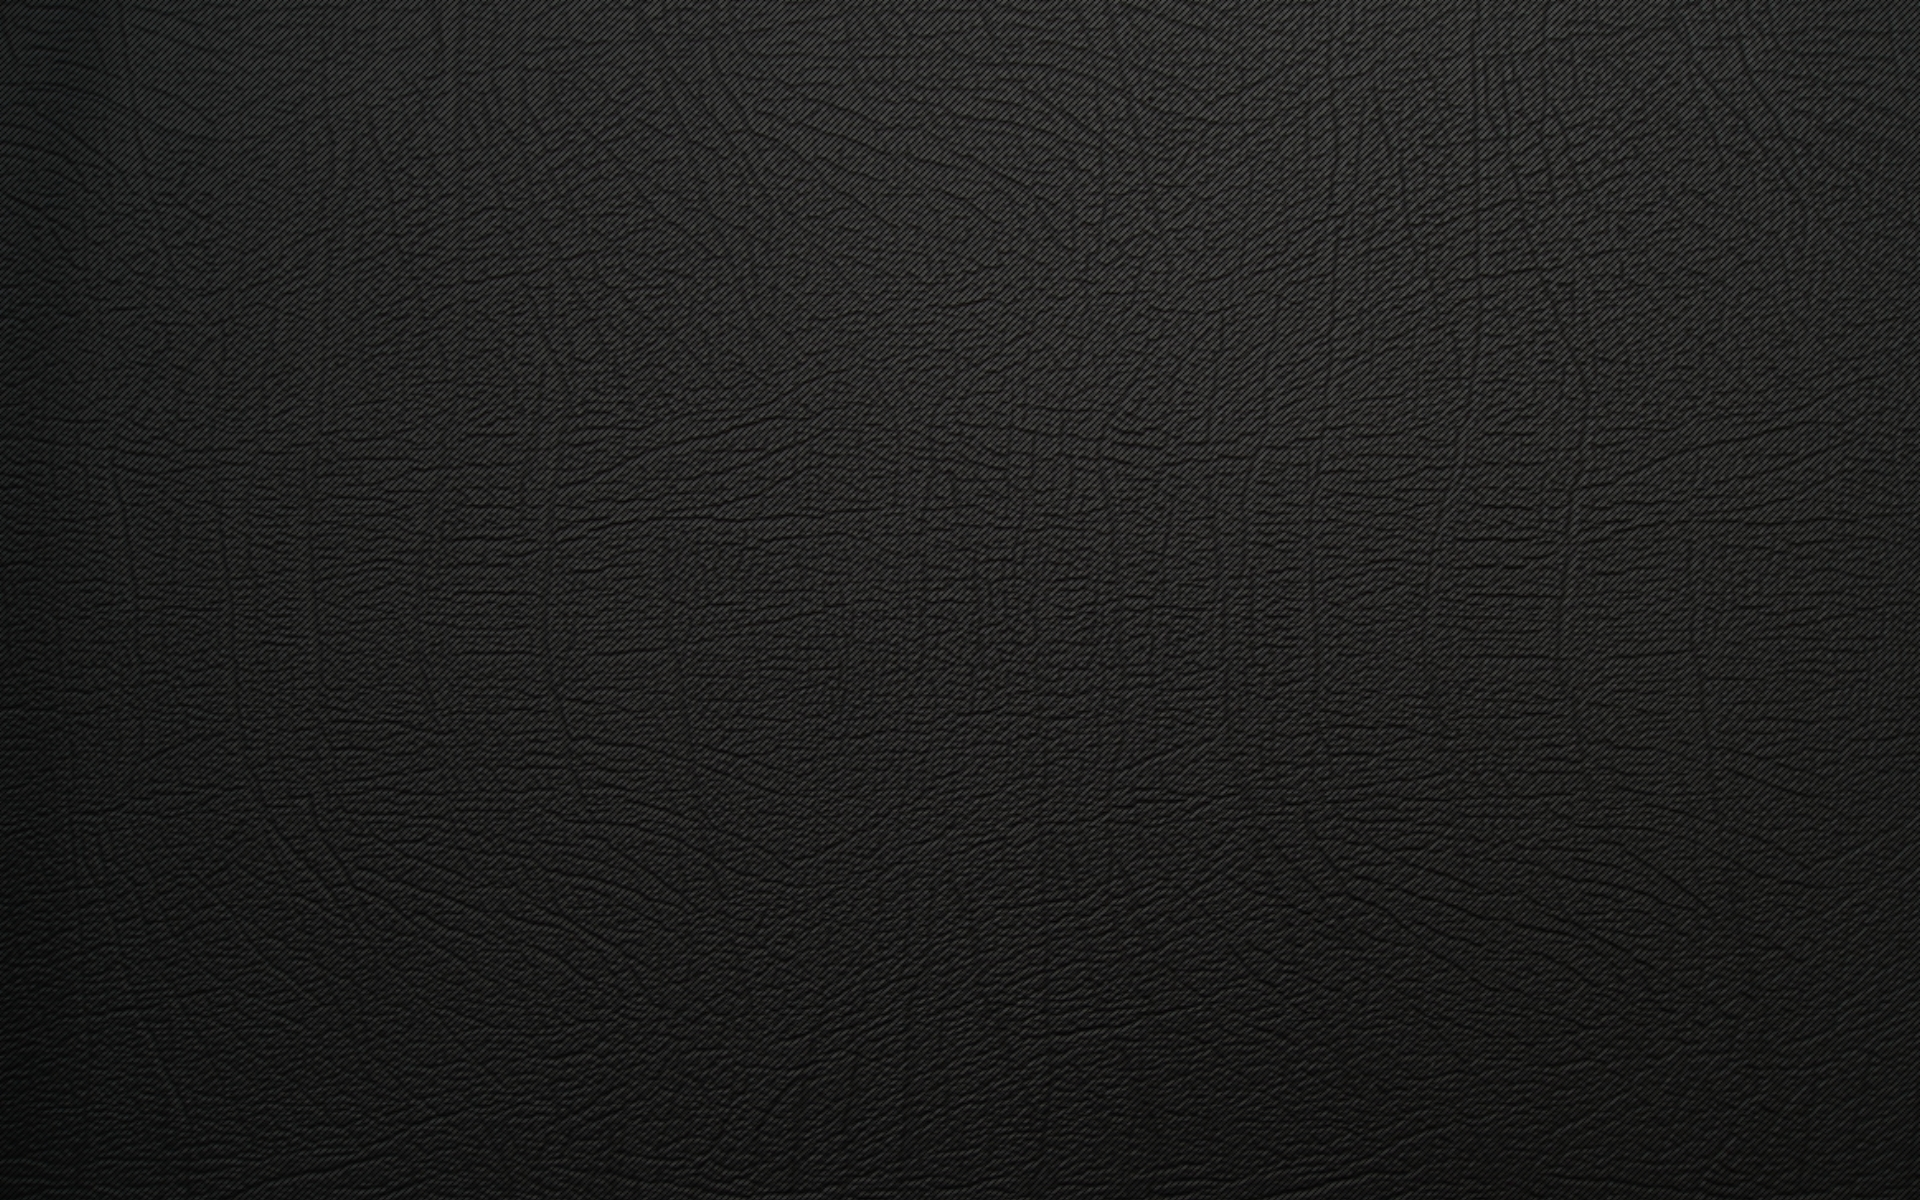 Chalkboard Wallpaper Picture 930 1920x1200 px 173 MB Other 1920x1200